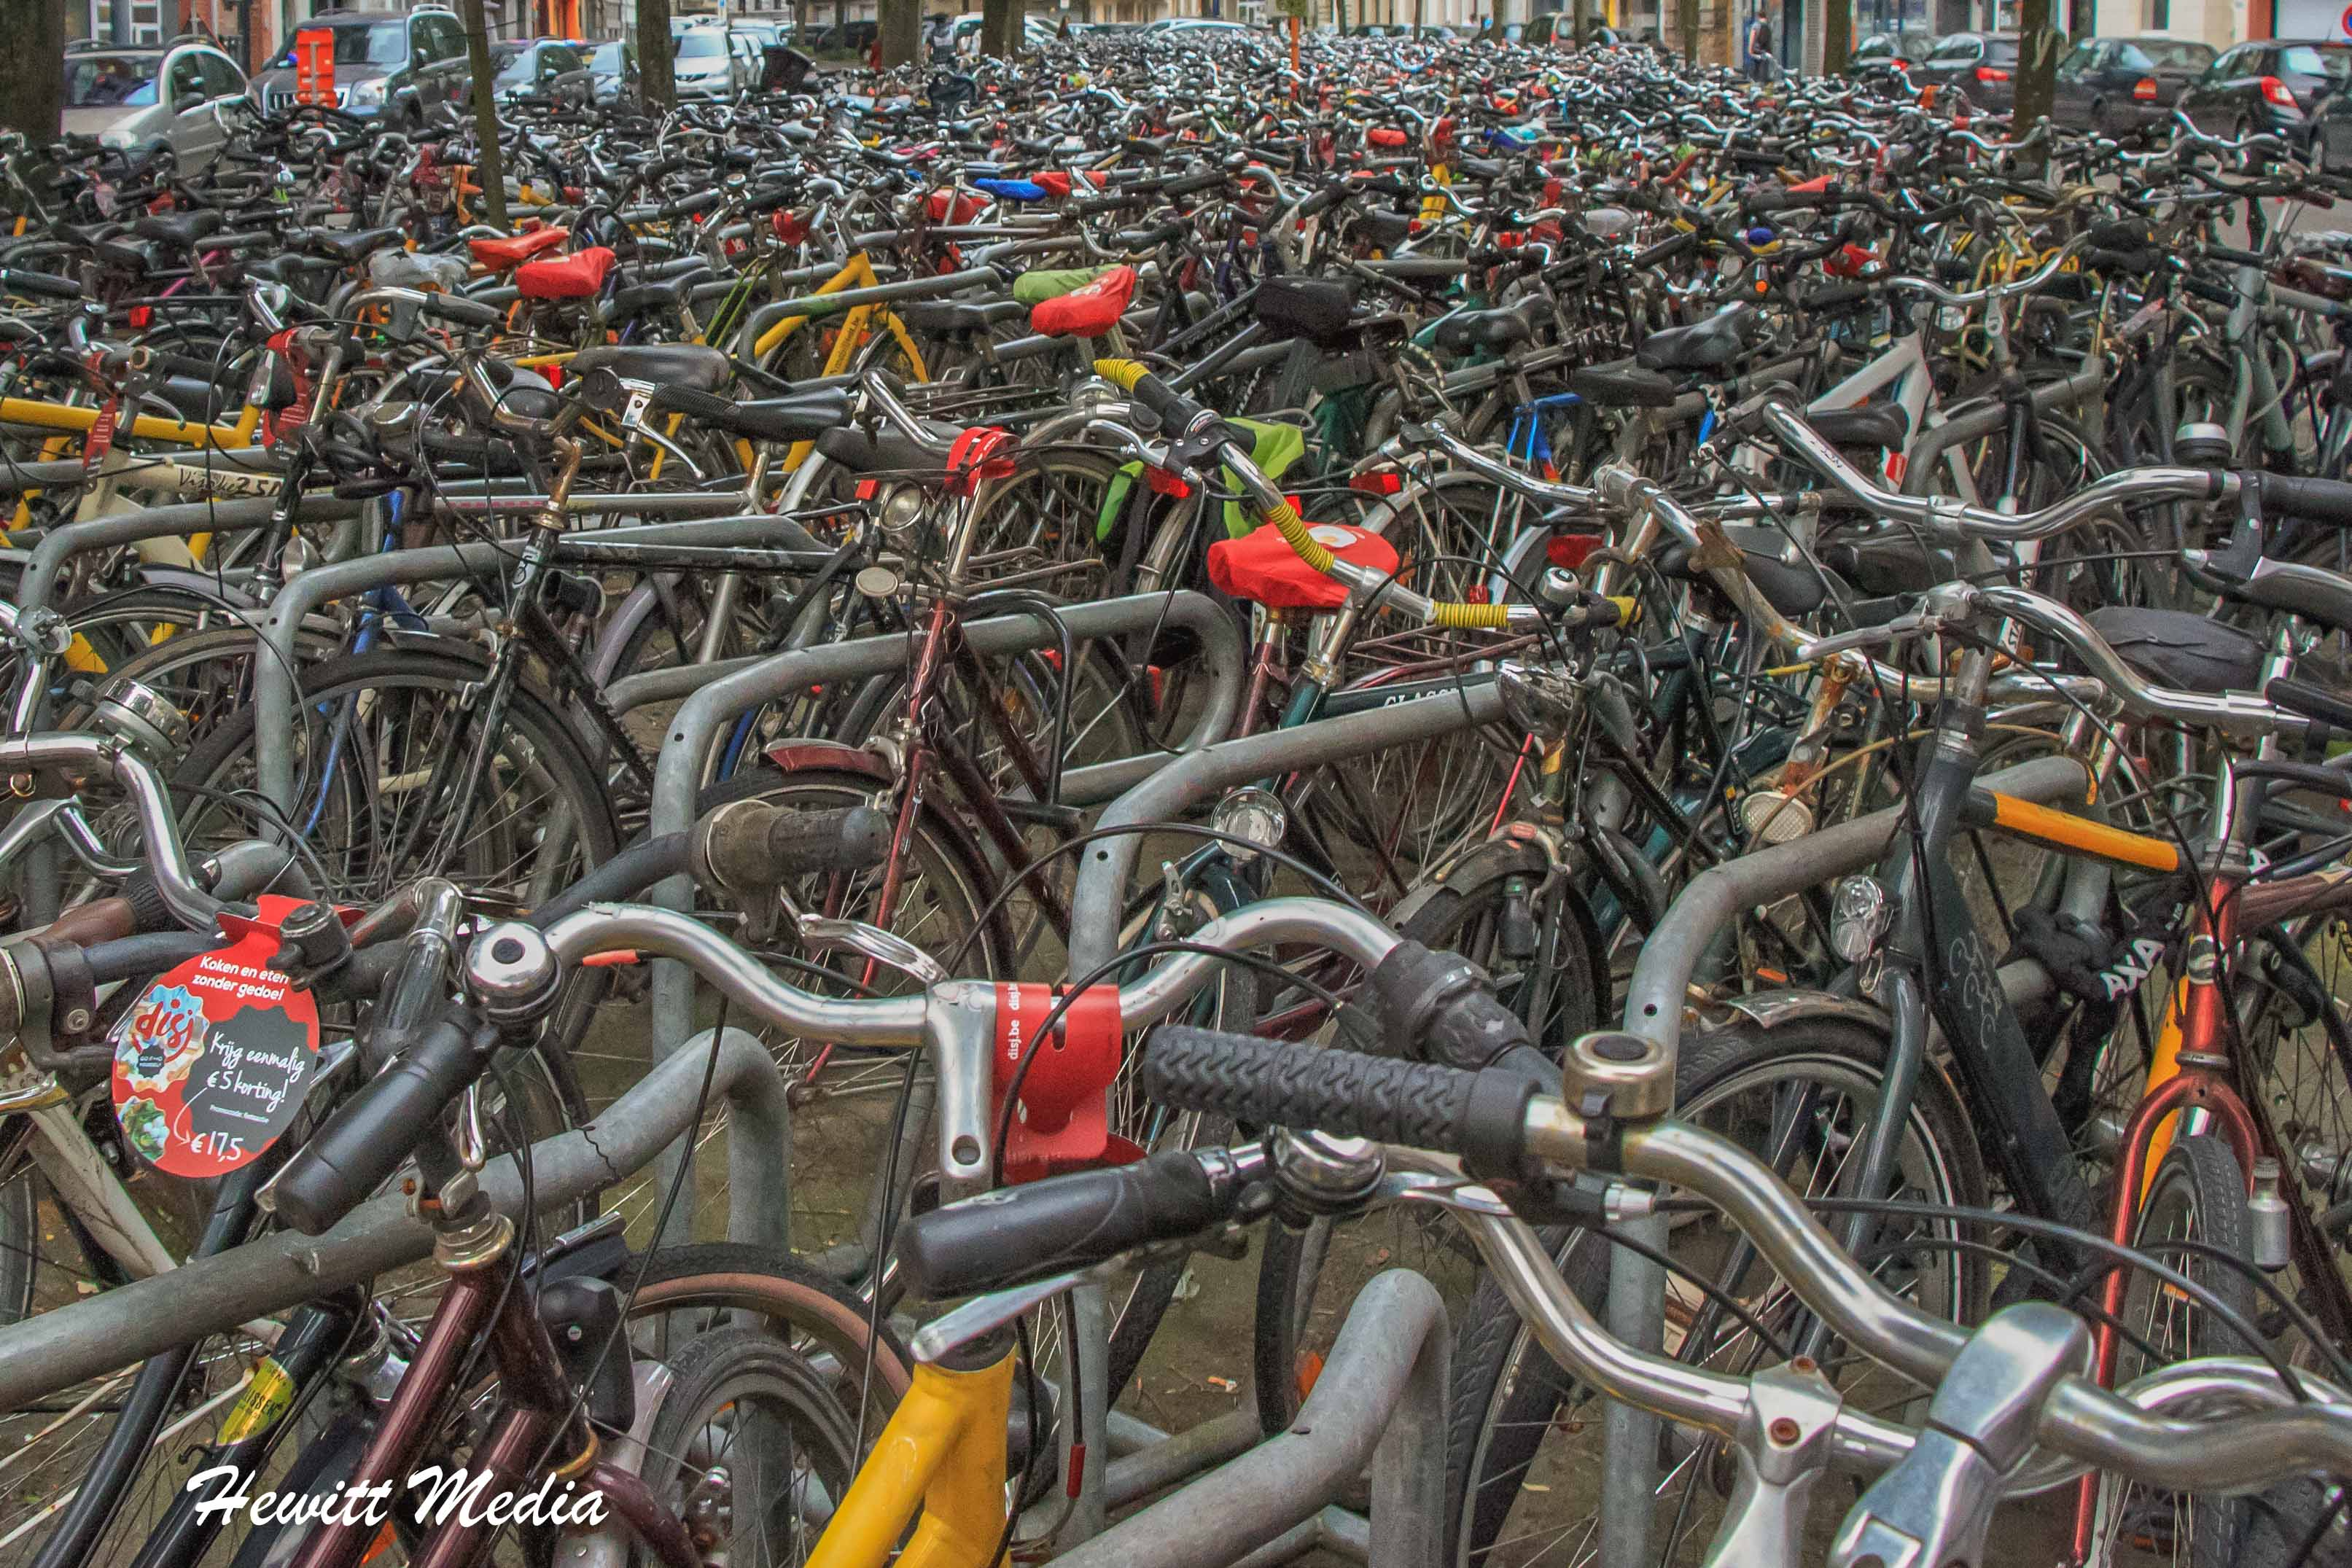 Bikes parked near the train station in Ghent